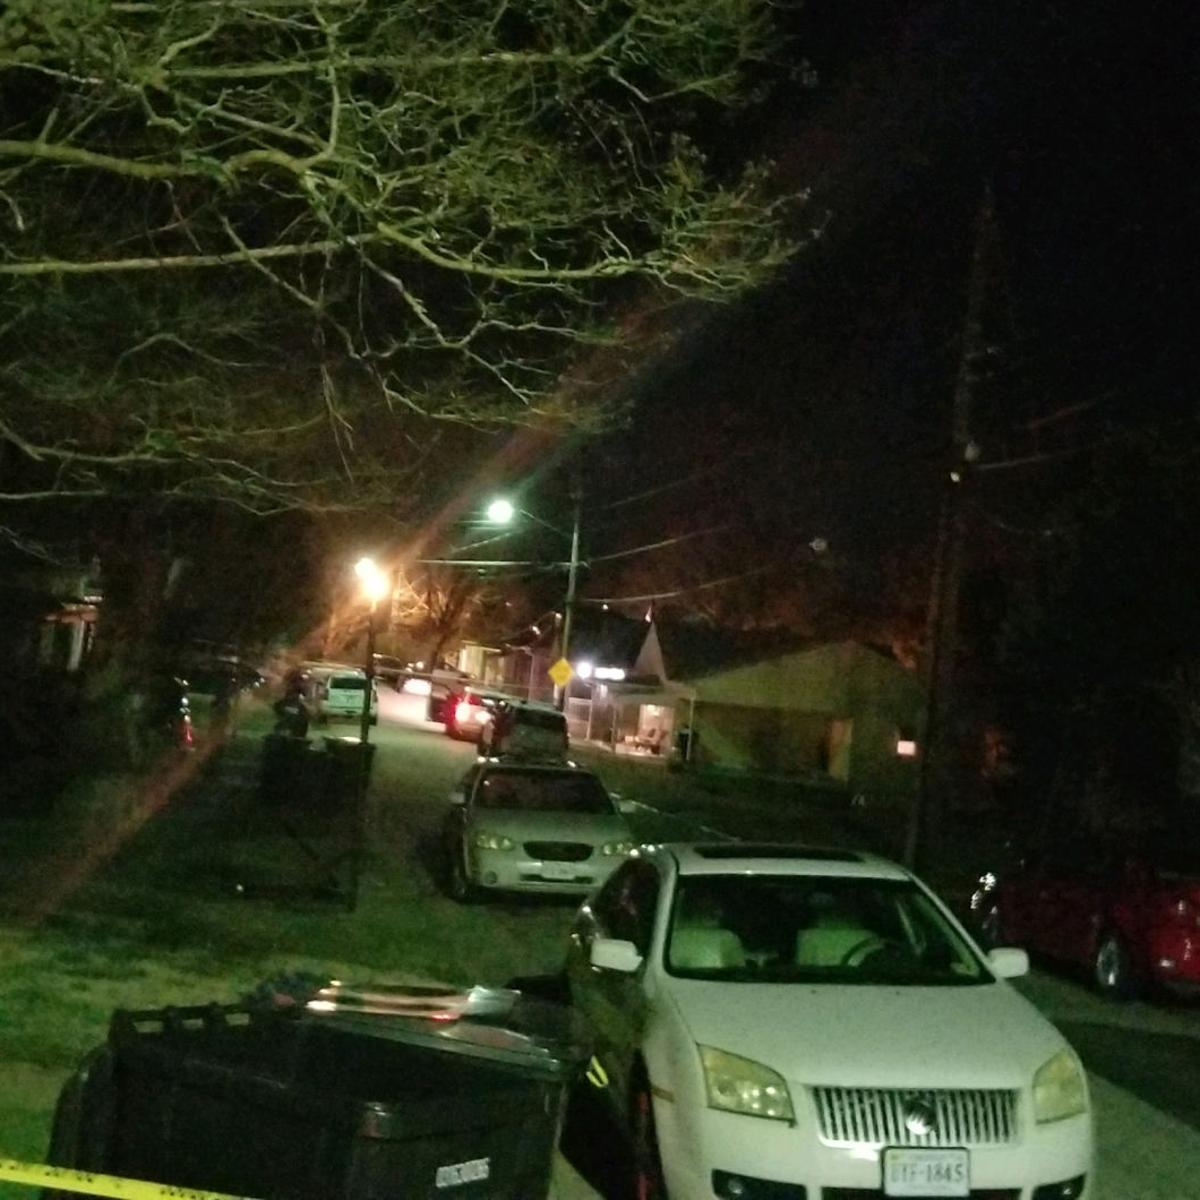 Police probe Monday night shooting in Danville | Local